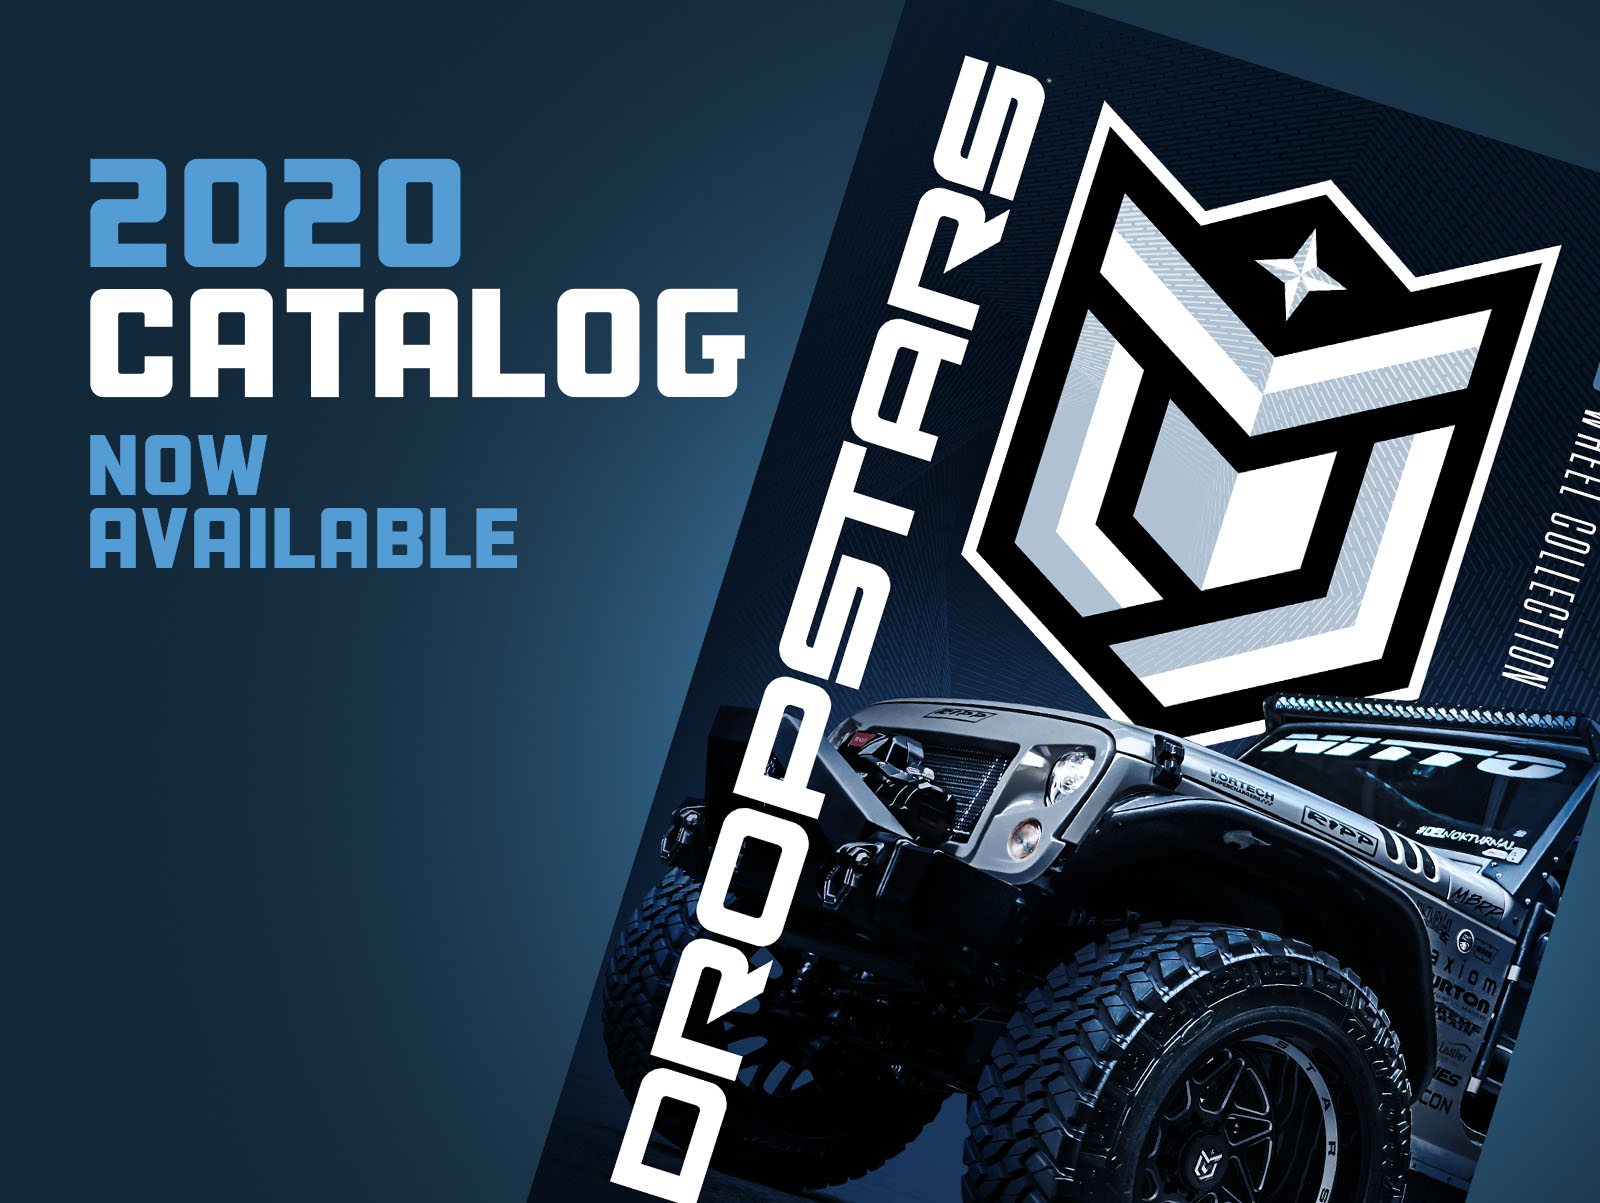 2019 DROPSTARS CATALOG